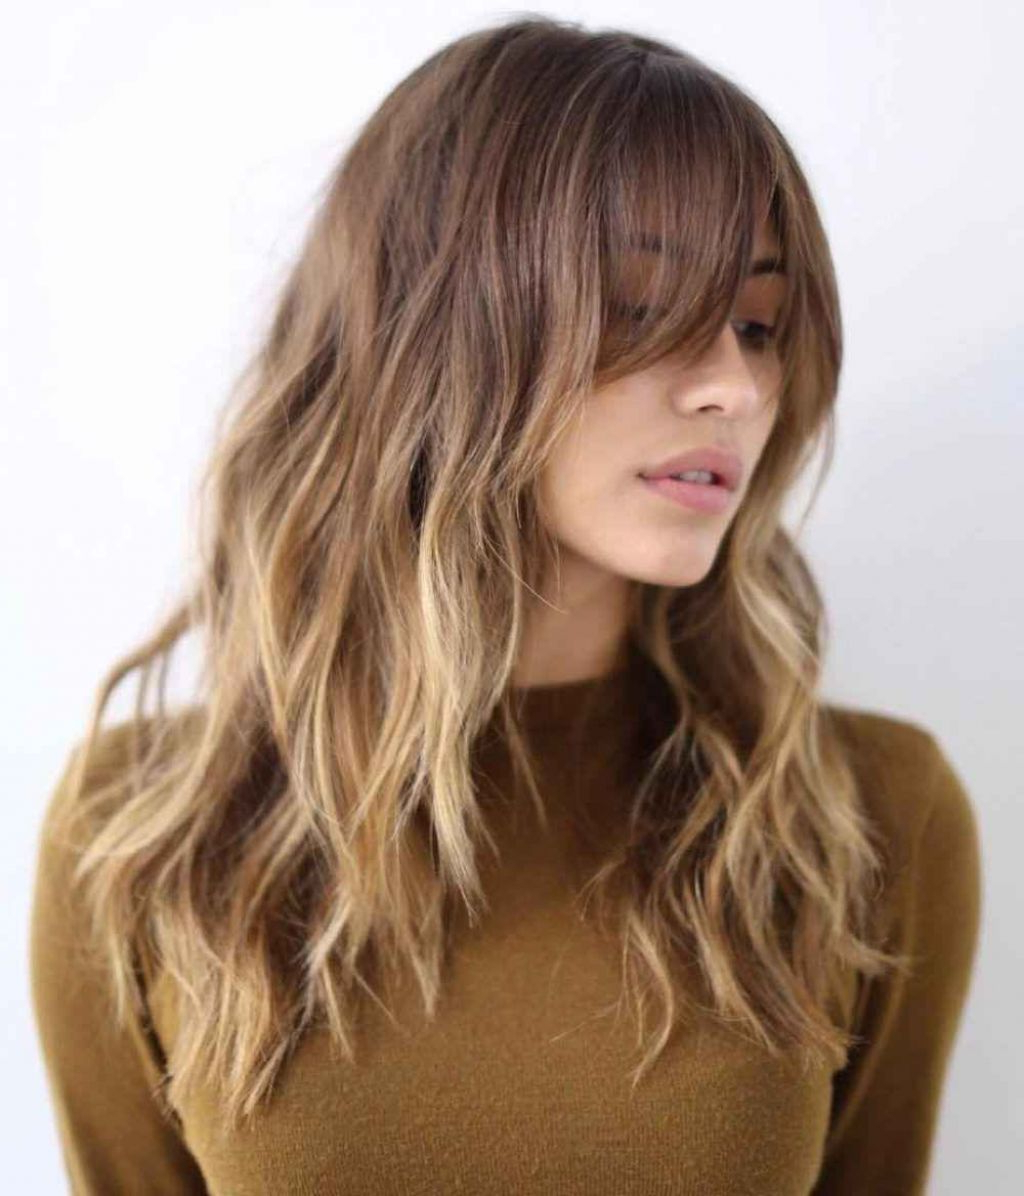 Most Recently Released Bang Medium Hairstyles For √ 24+ Nice Medium Bob Hairstyles With Bangs: Medium Bob Hairstyle (View 12 of 20)